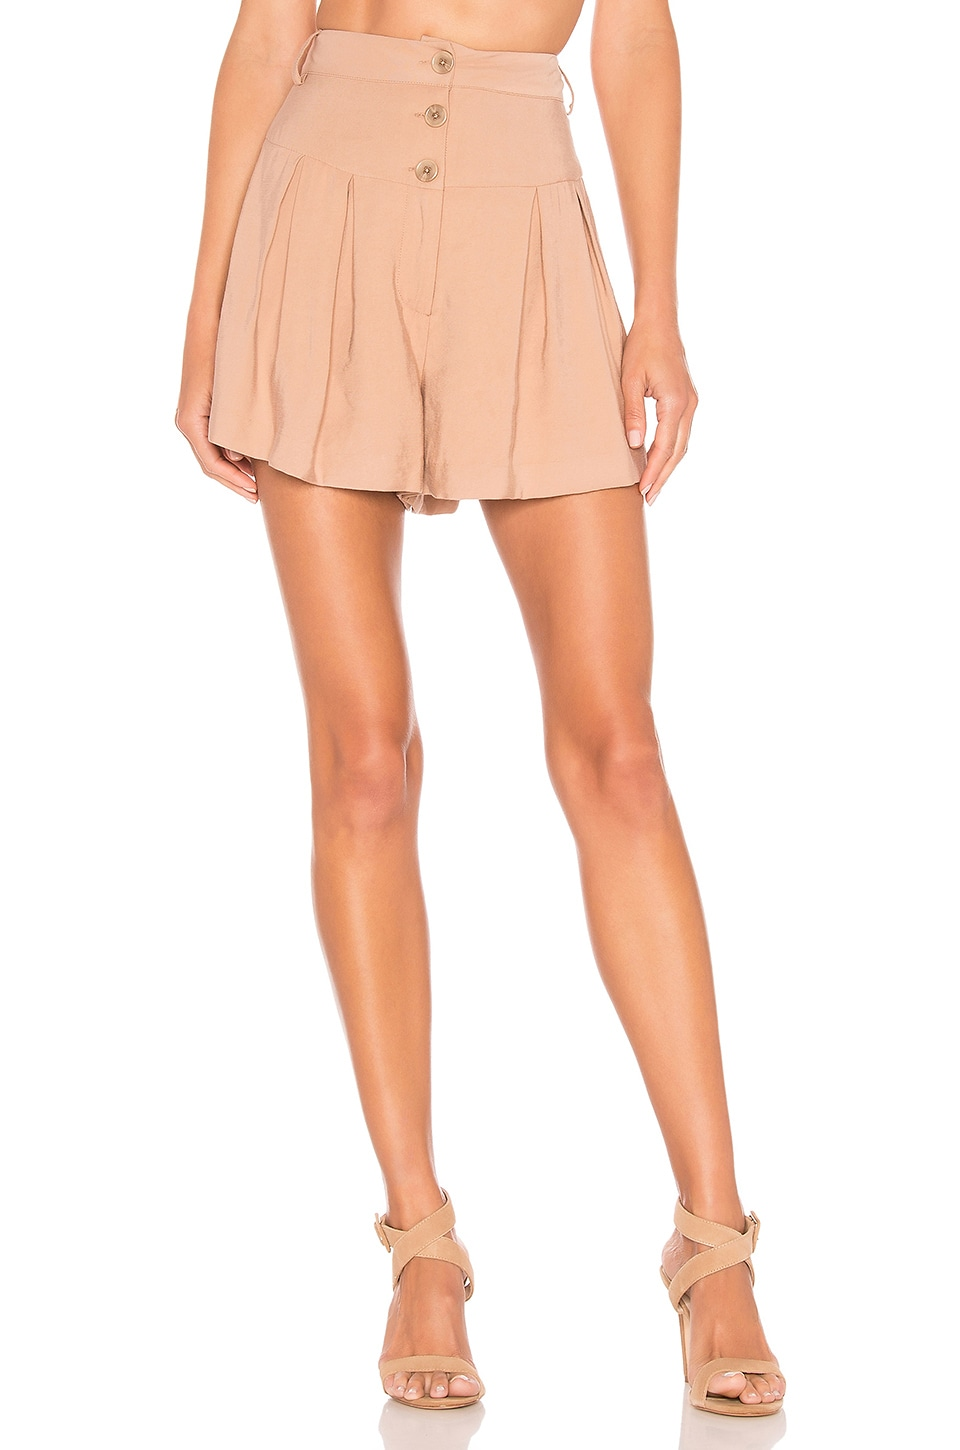 L'Academie Delightful Shorts in Taupe